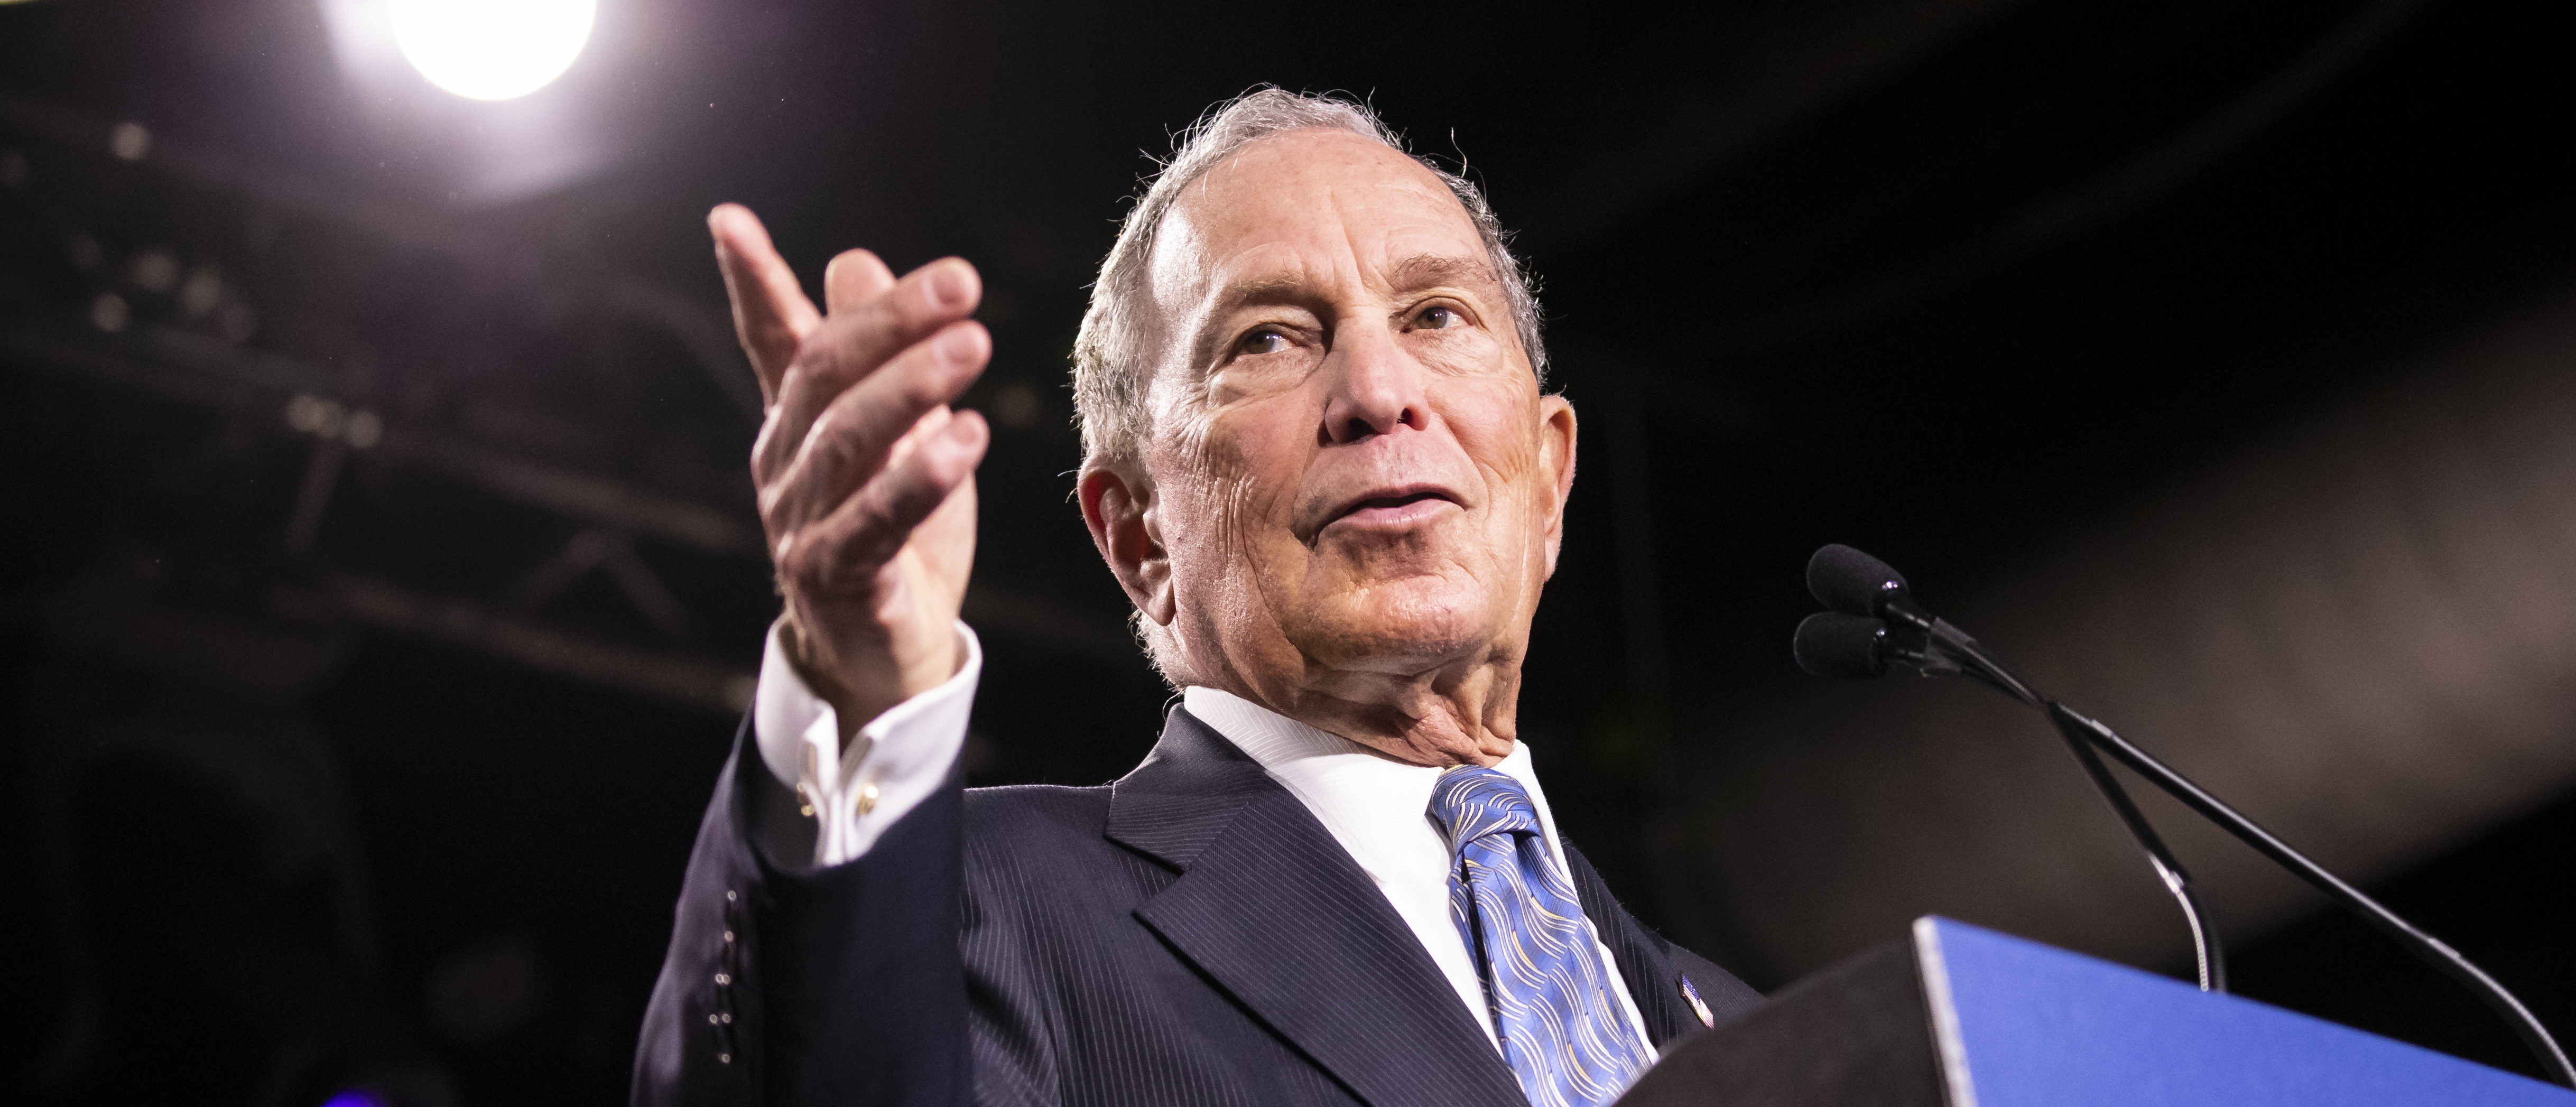 Democratic presidential candidate former New York City Mayor Mike Bloomberg delivers remarks during a campaign rally on Feb.12, 2020 in Nashville, Tennessee. (Photo by Brett Carlsen/Getty Images)